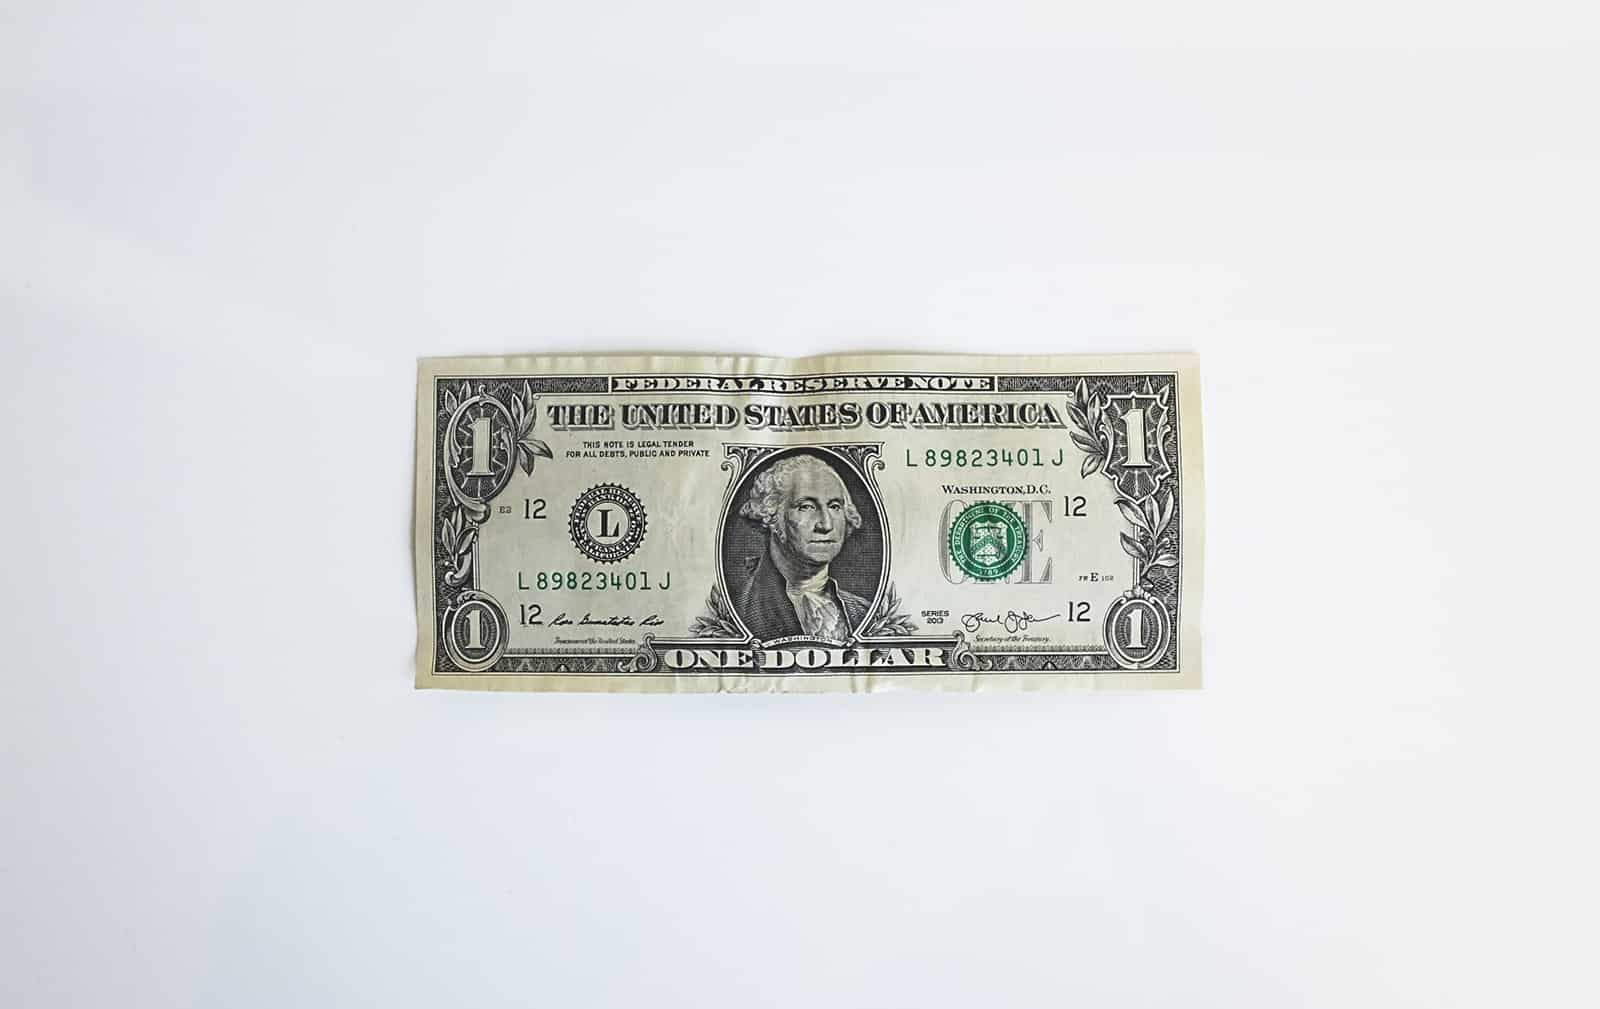 An image of a single dollar on a white background